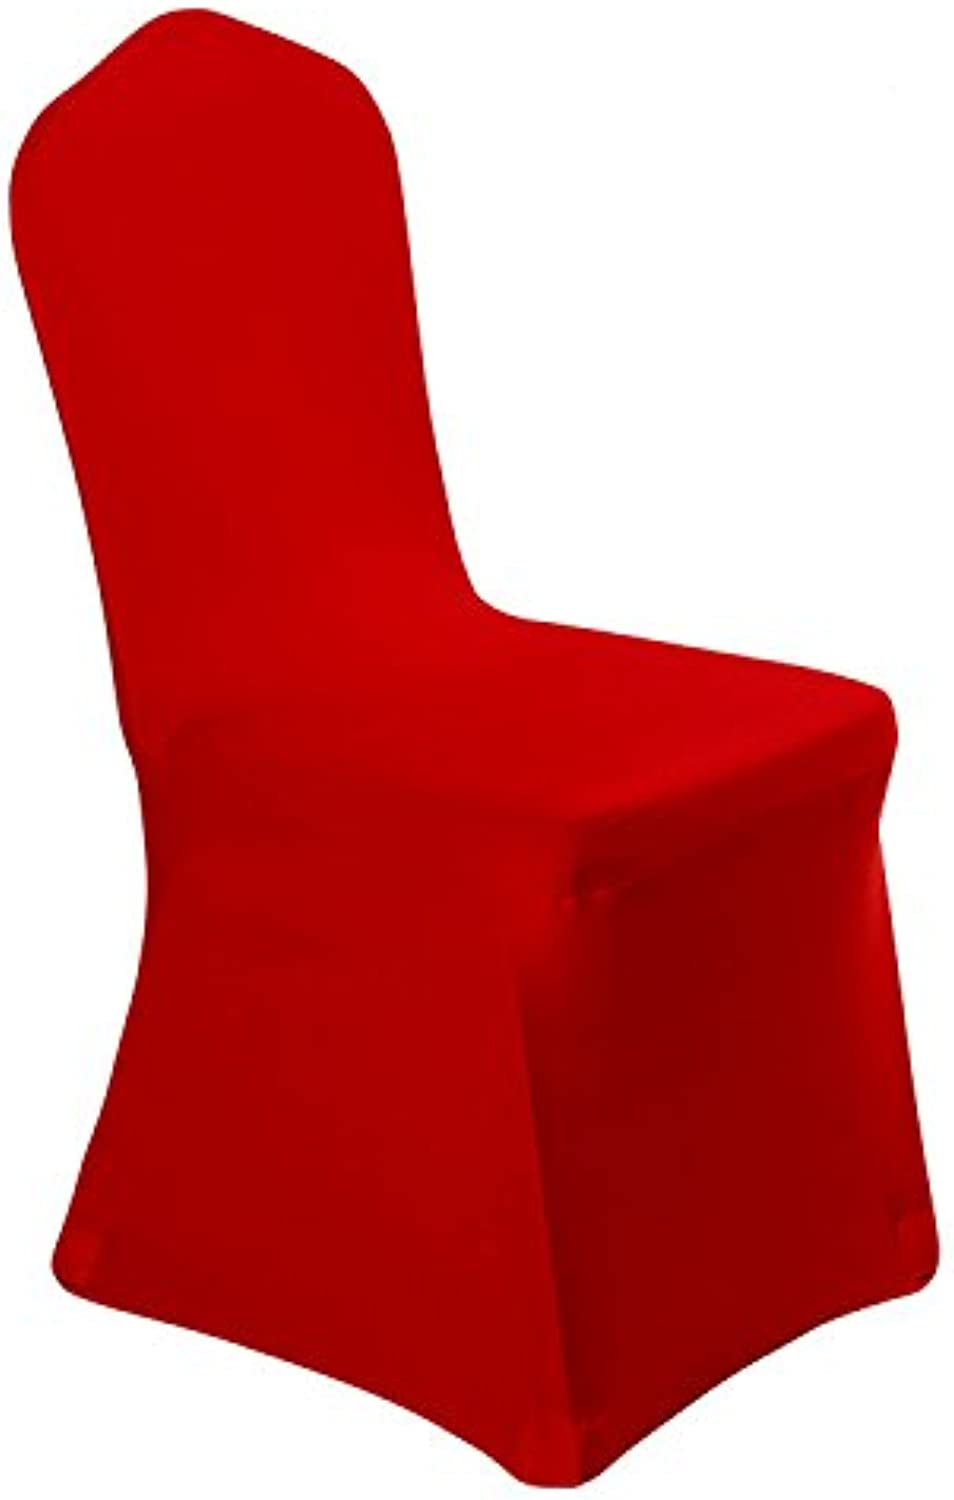 GFCC Pack of 10 Bright Red Stretch Chair Cover Spandex Fabric Restaurant Cover Supplies for Wedding Party Birthday Event Decoration